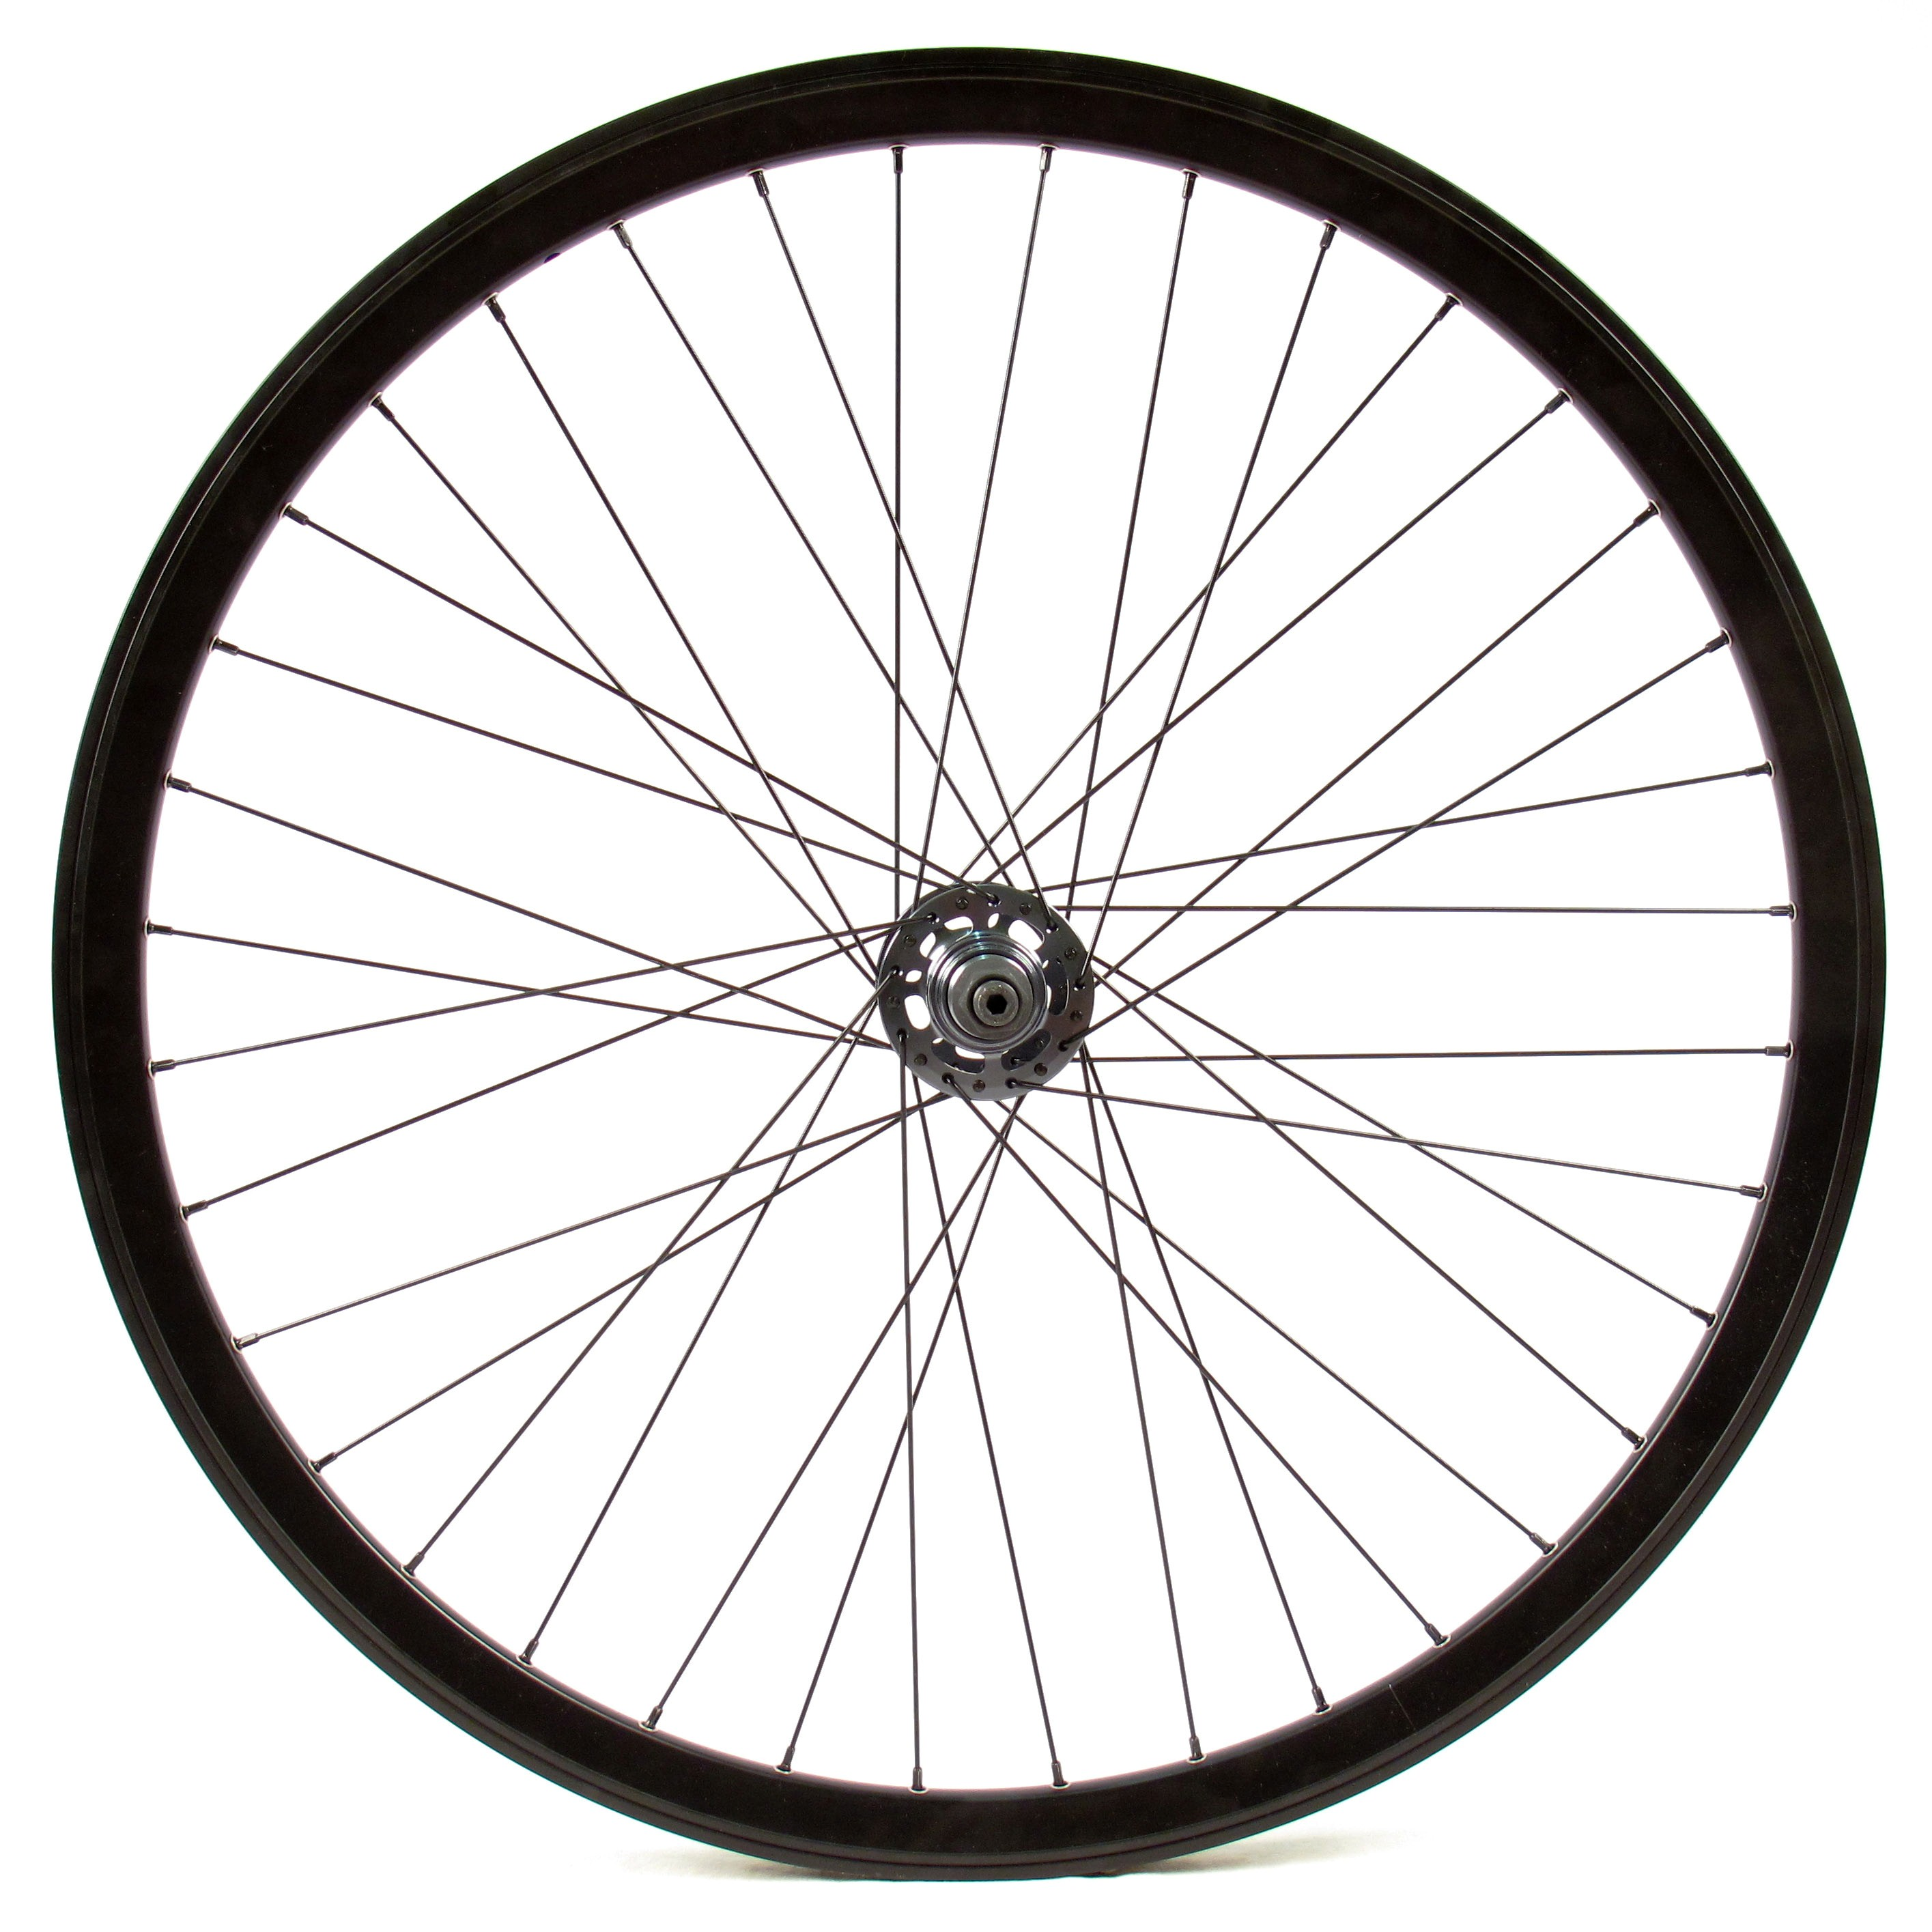 banner transparent stock Wheels clip art library. Bicycle wheel clipart